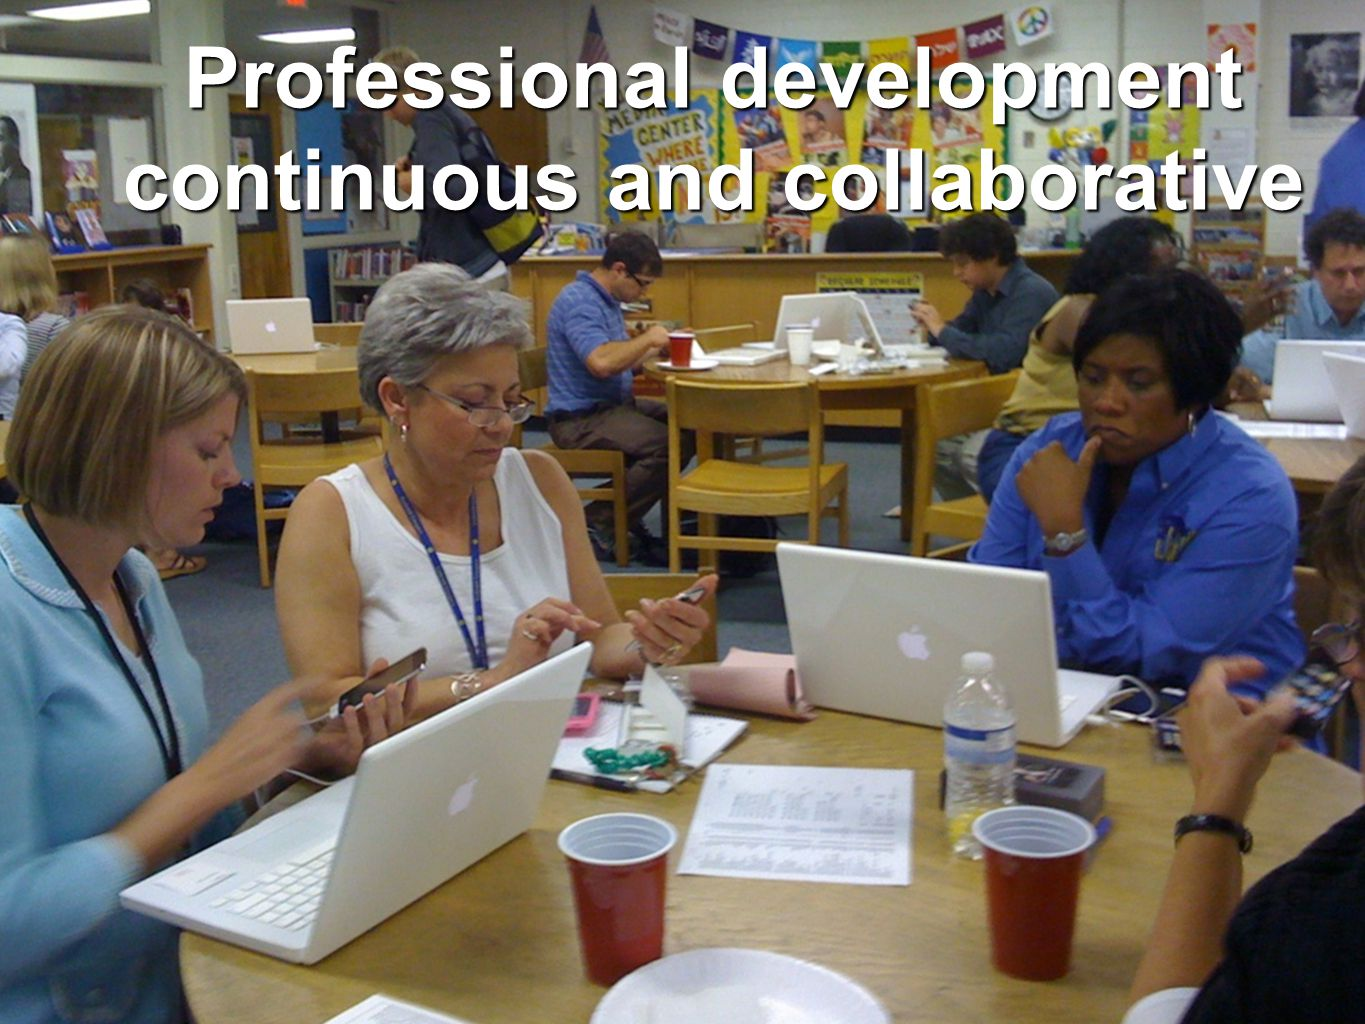 Professional development continuous and collaborative